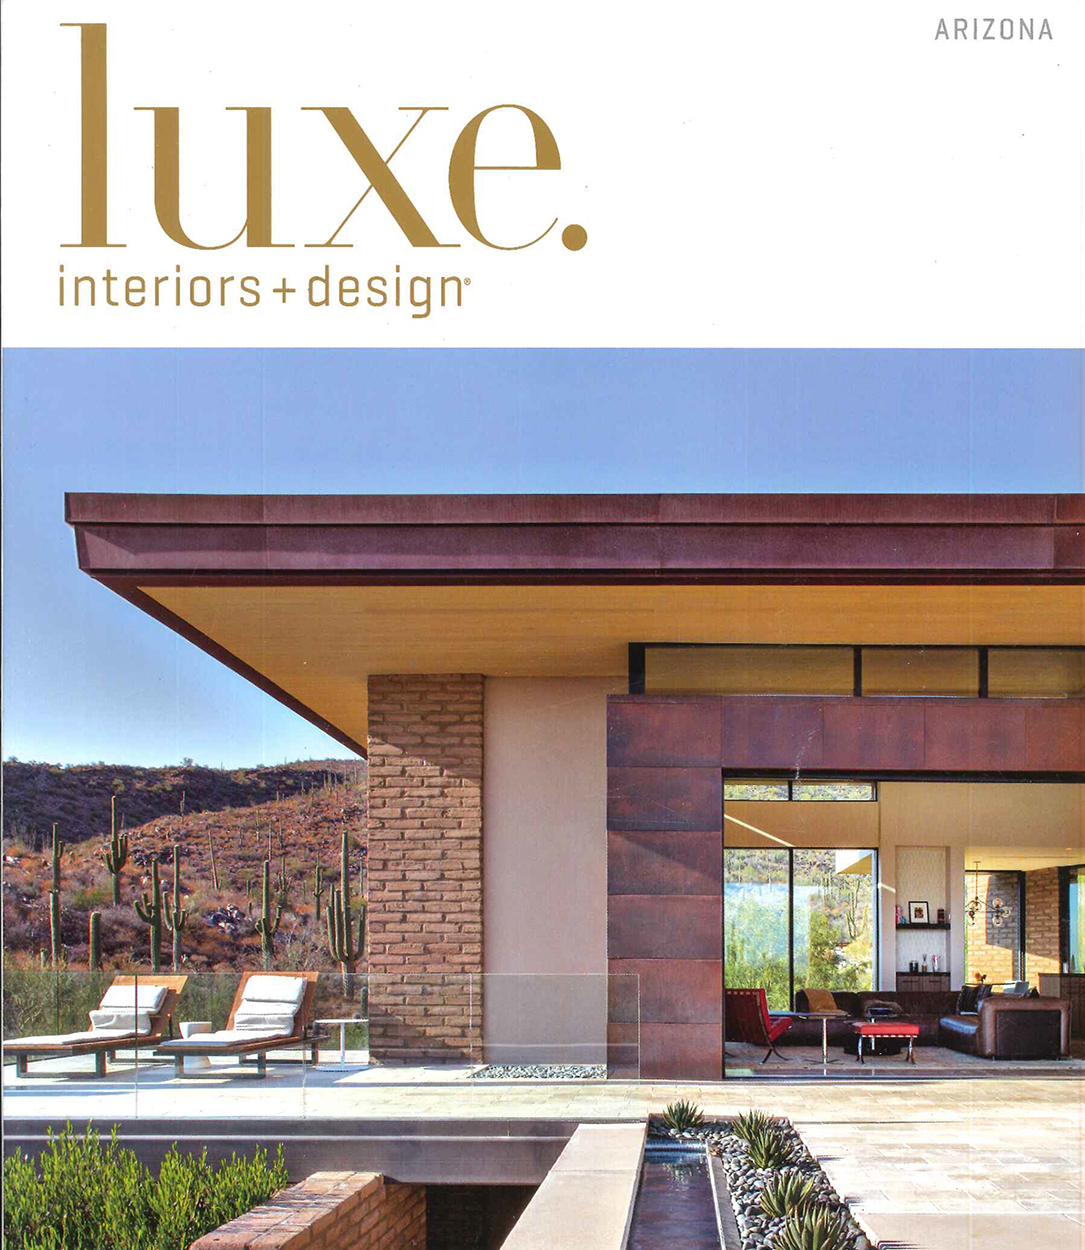 luxe interiors + design magazine